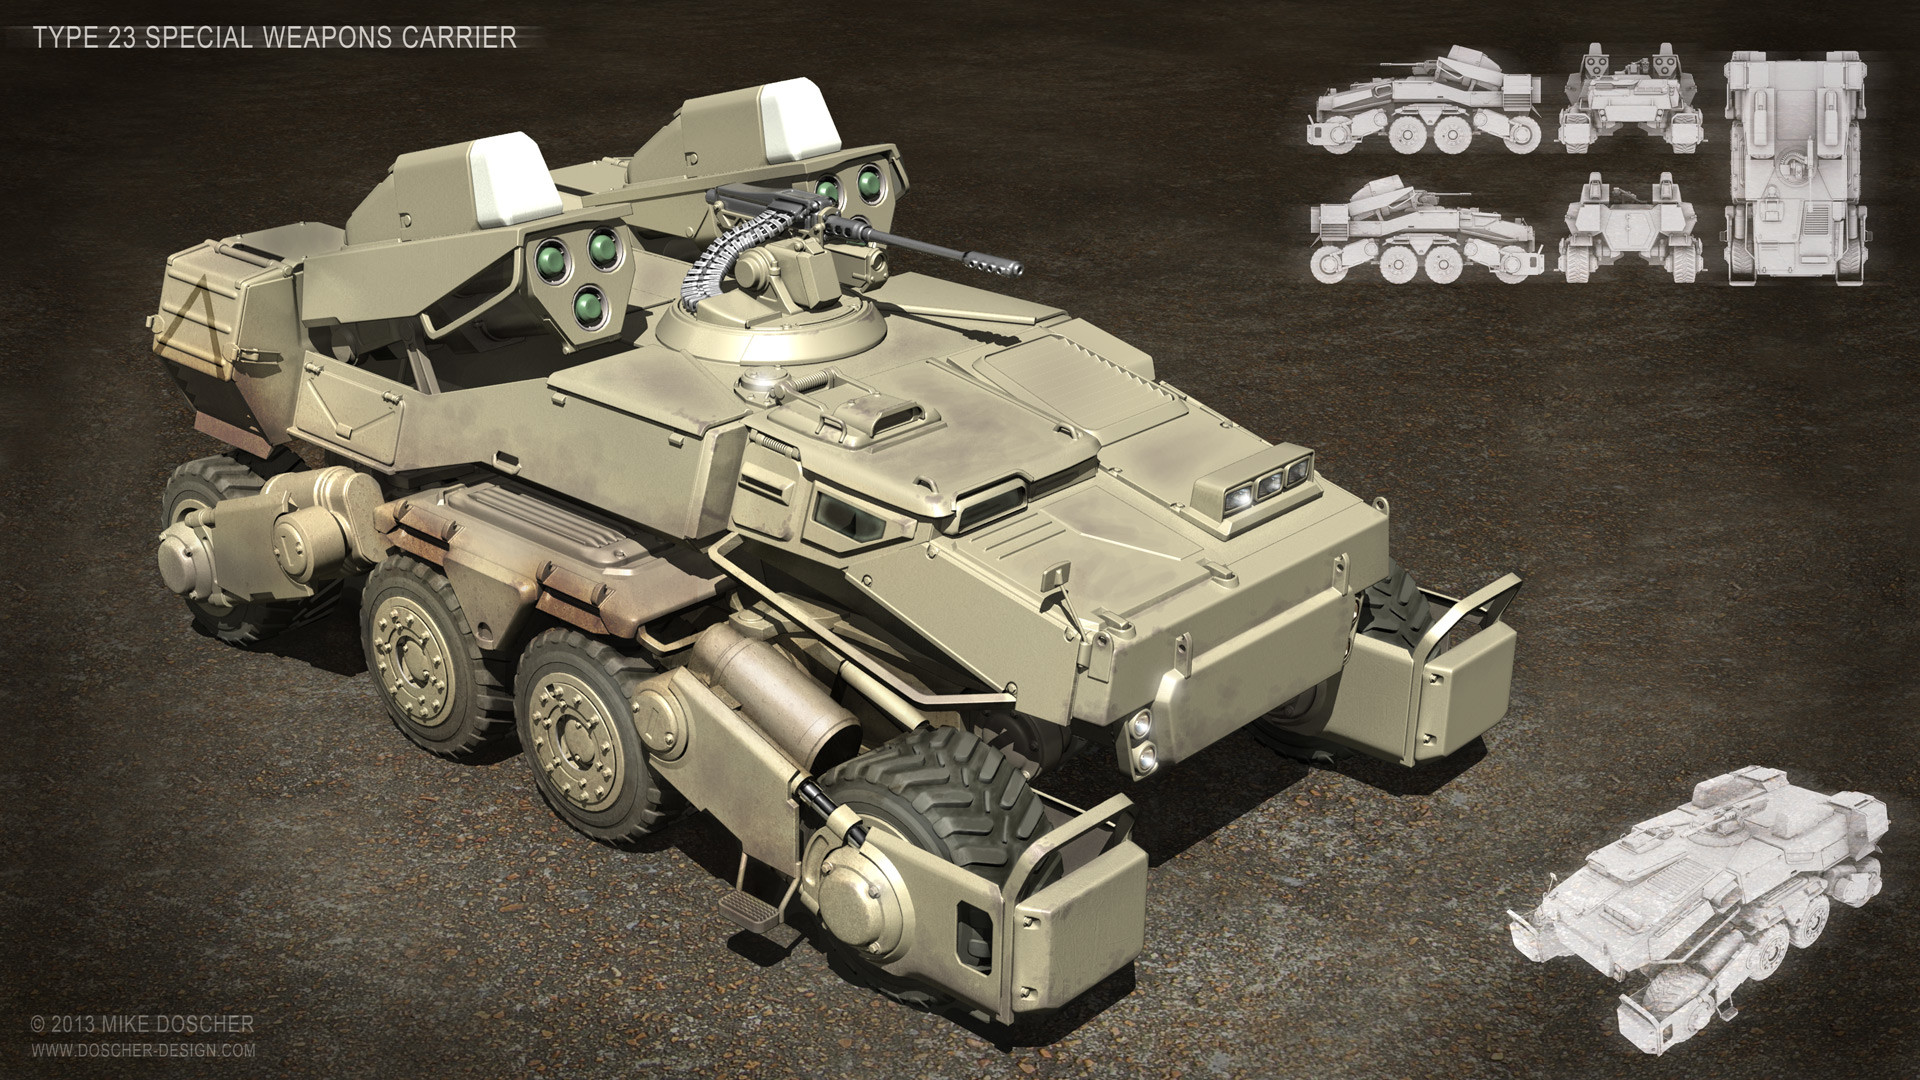 Mike doscher type 23 special weapons carrier by mikedoscher d600tfc